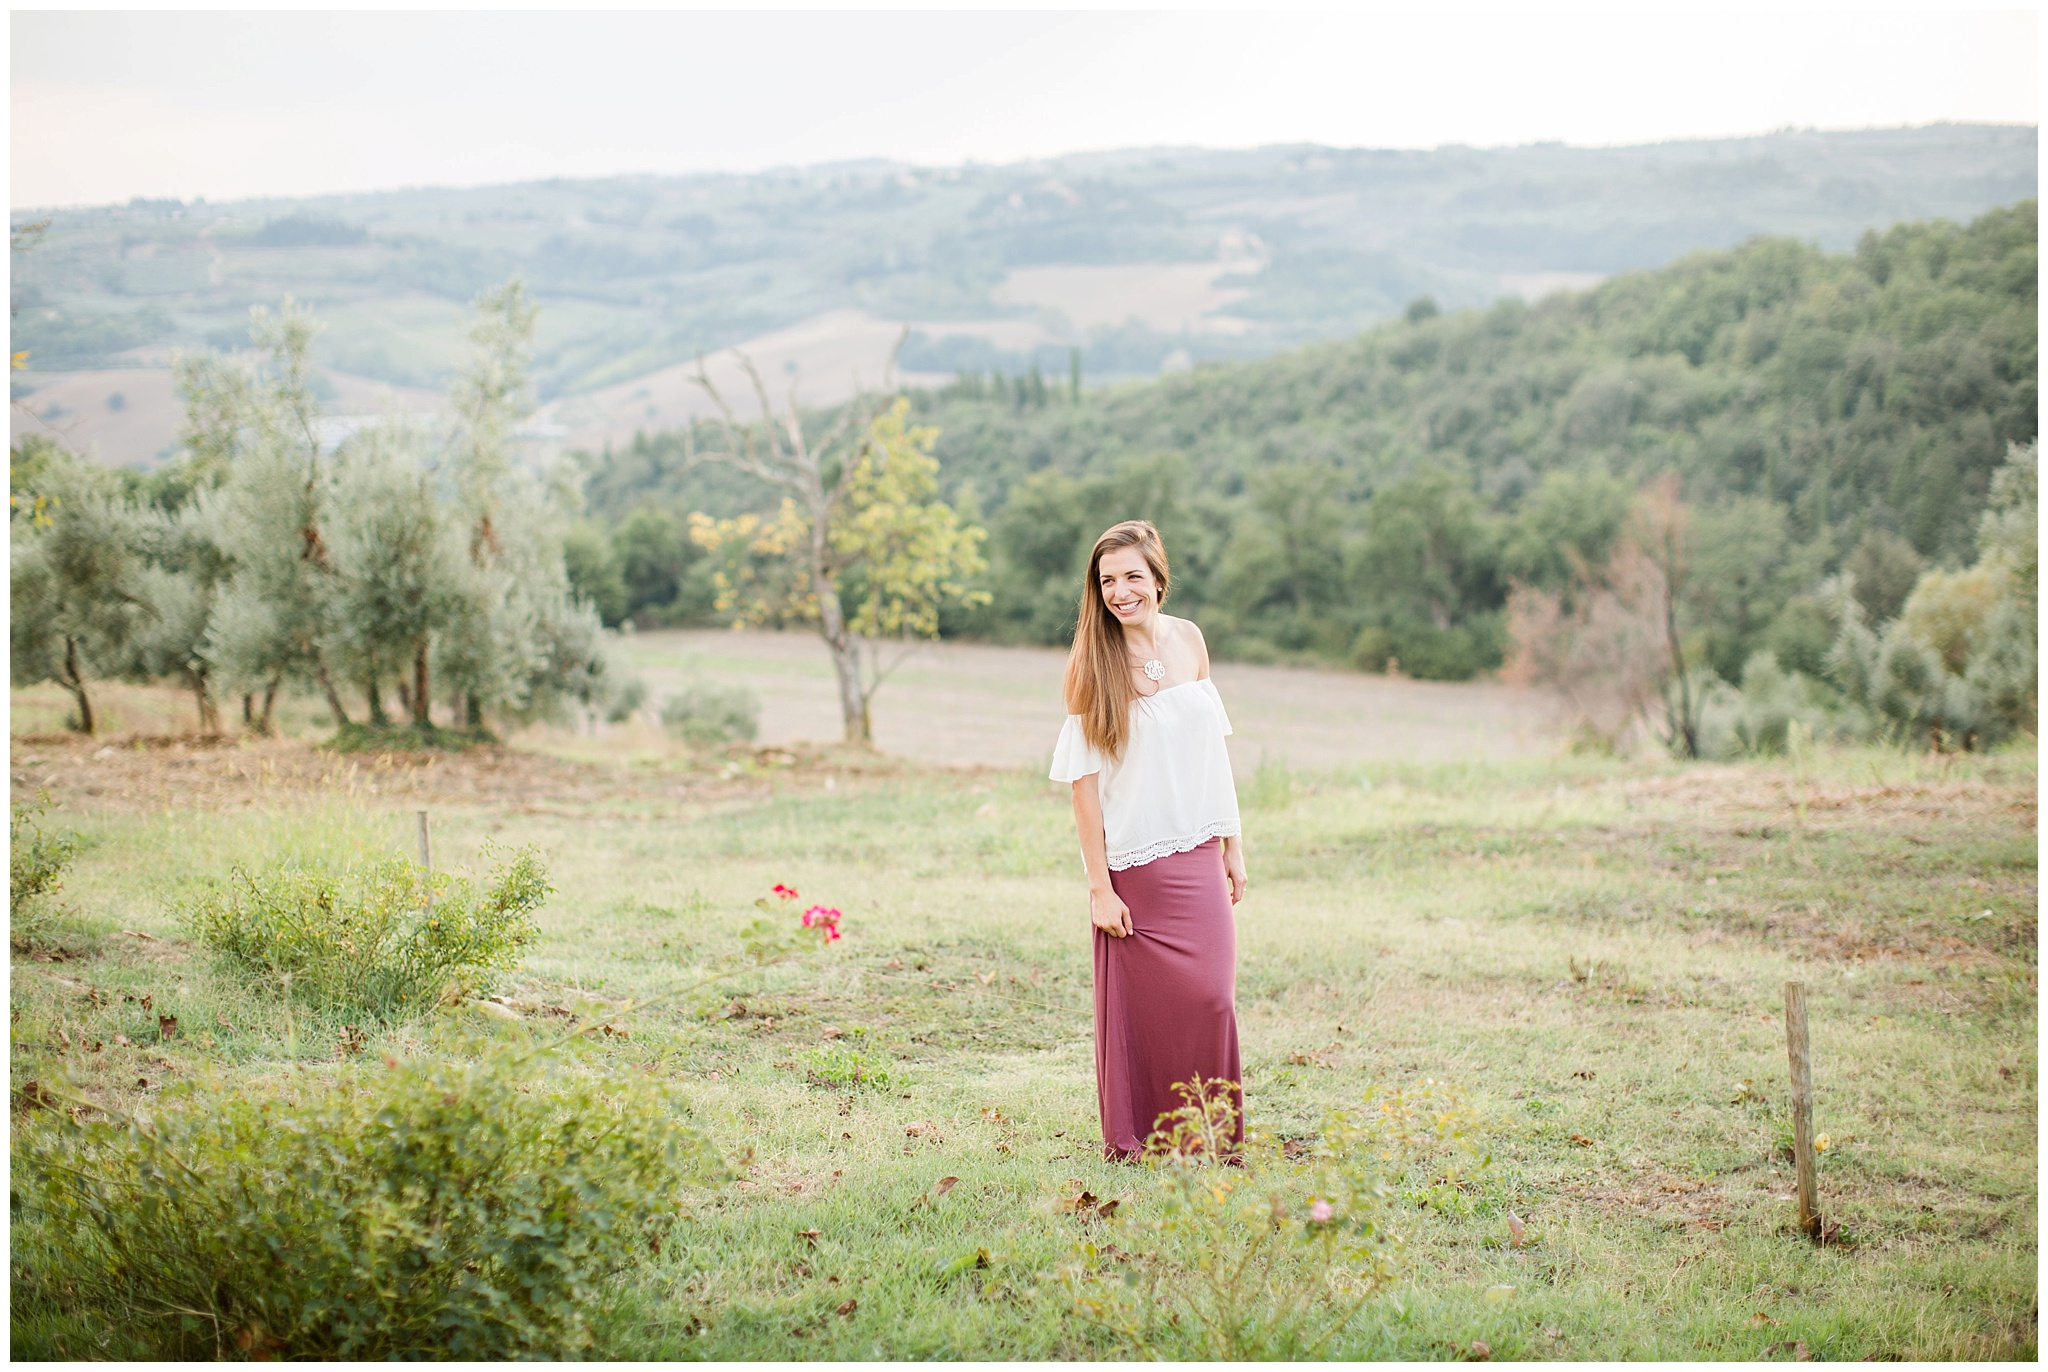 View More: http://karimephotography.pass.us/ashley--tyler--tuscany--venice